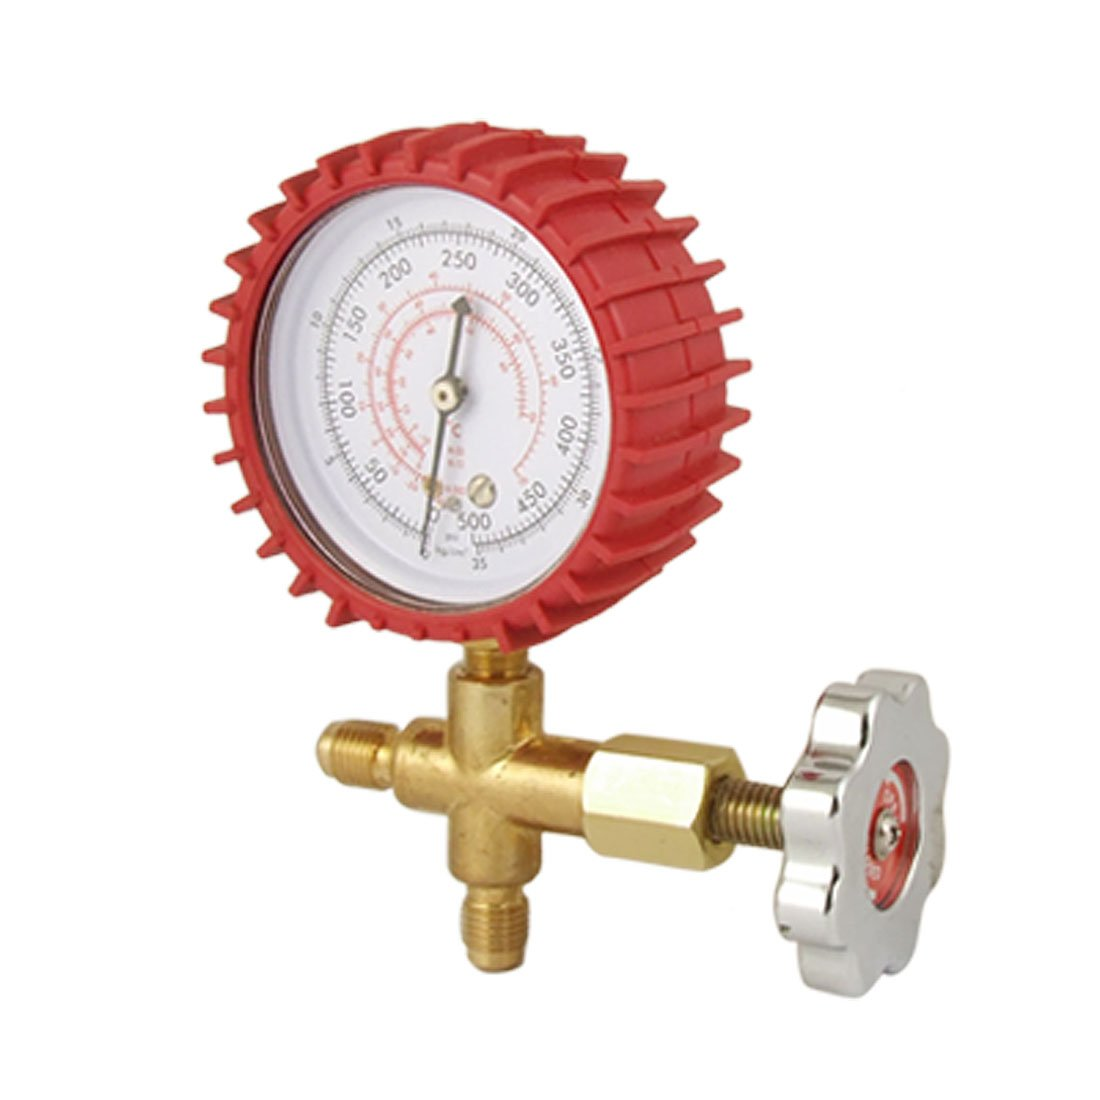 uxcell Air Conditioner Refrigeration Single Manifold Pressure Gauge Tool by uxcell